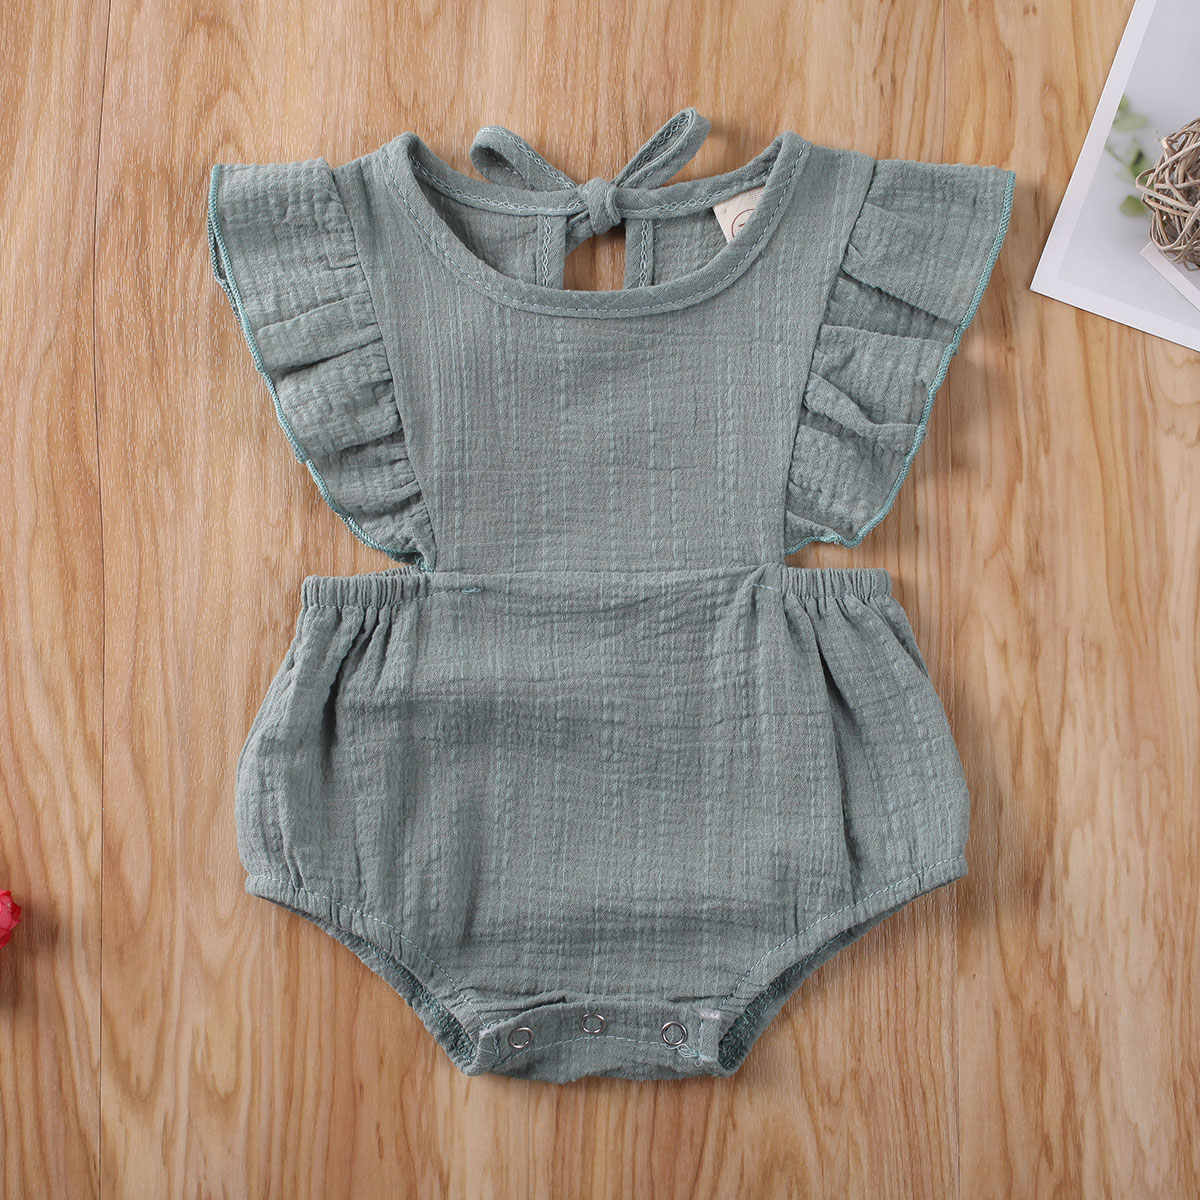 2020 Baby Summer Clothing Newborn Infant Baby Girl Solid Clothes Ruffle Jumpsuit 100% Cotton High Quality Bodysuit Outfit 0-12M